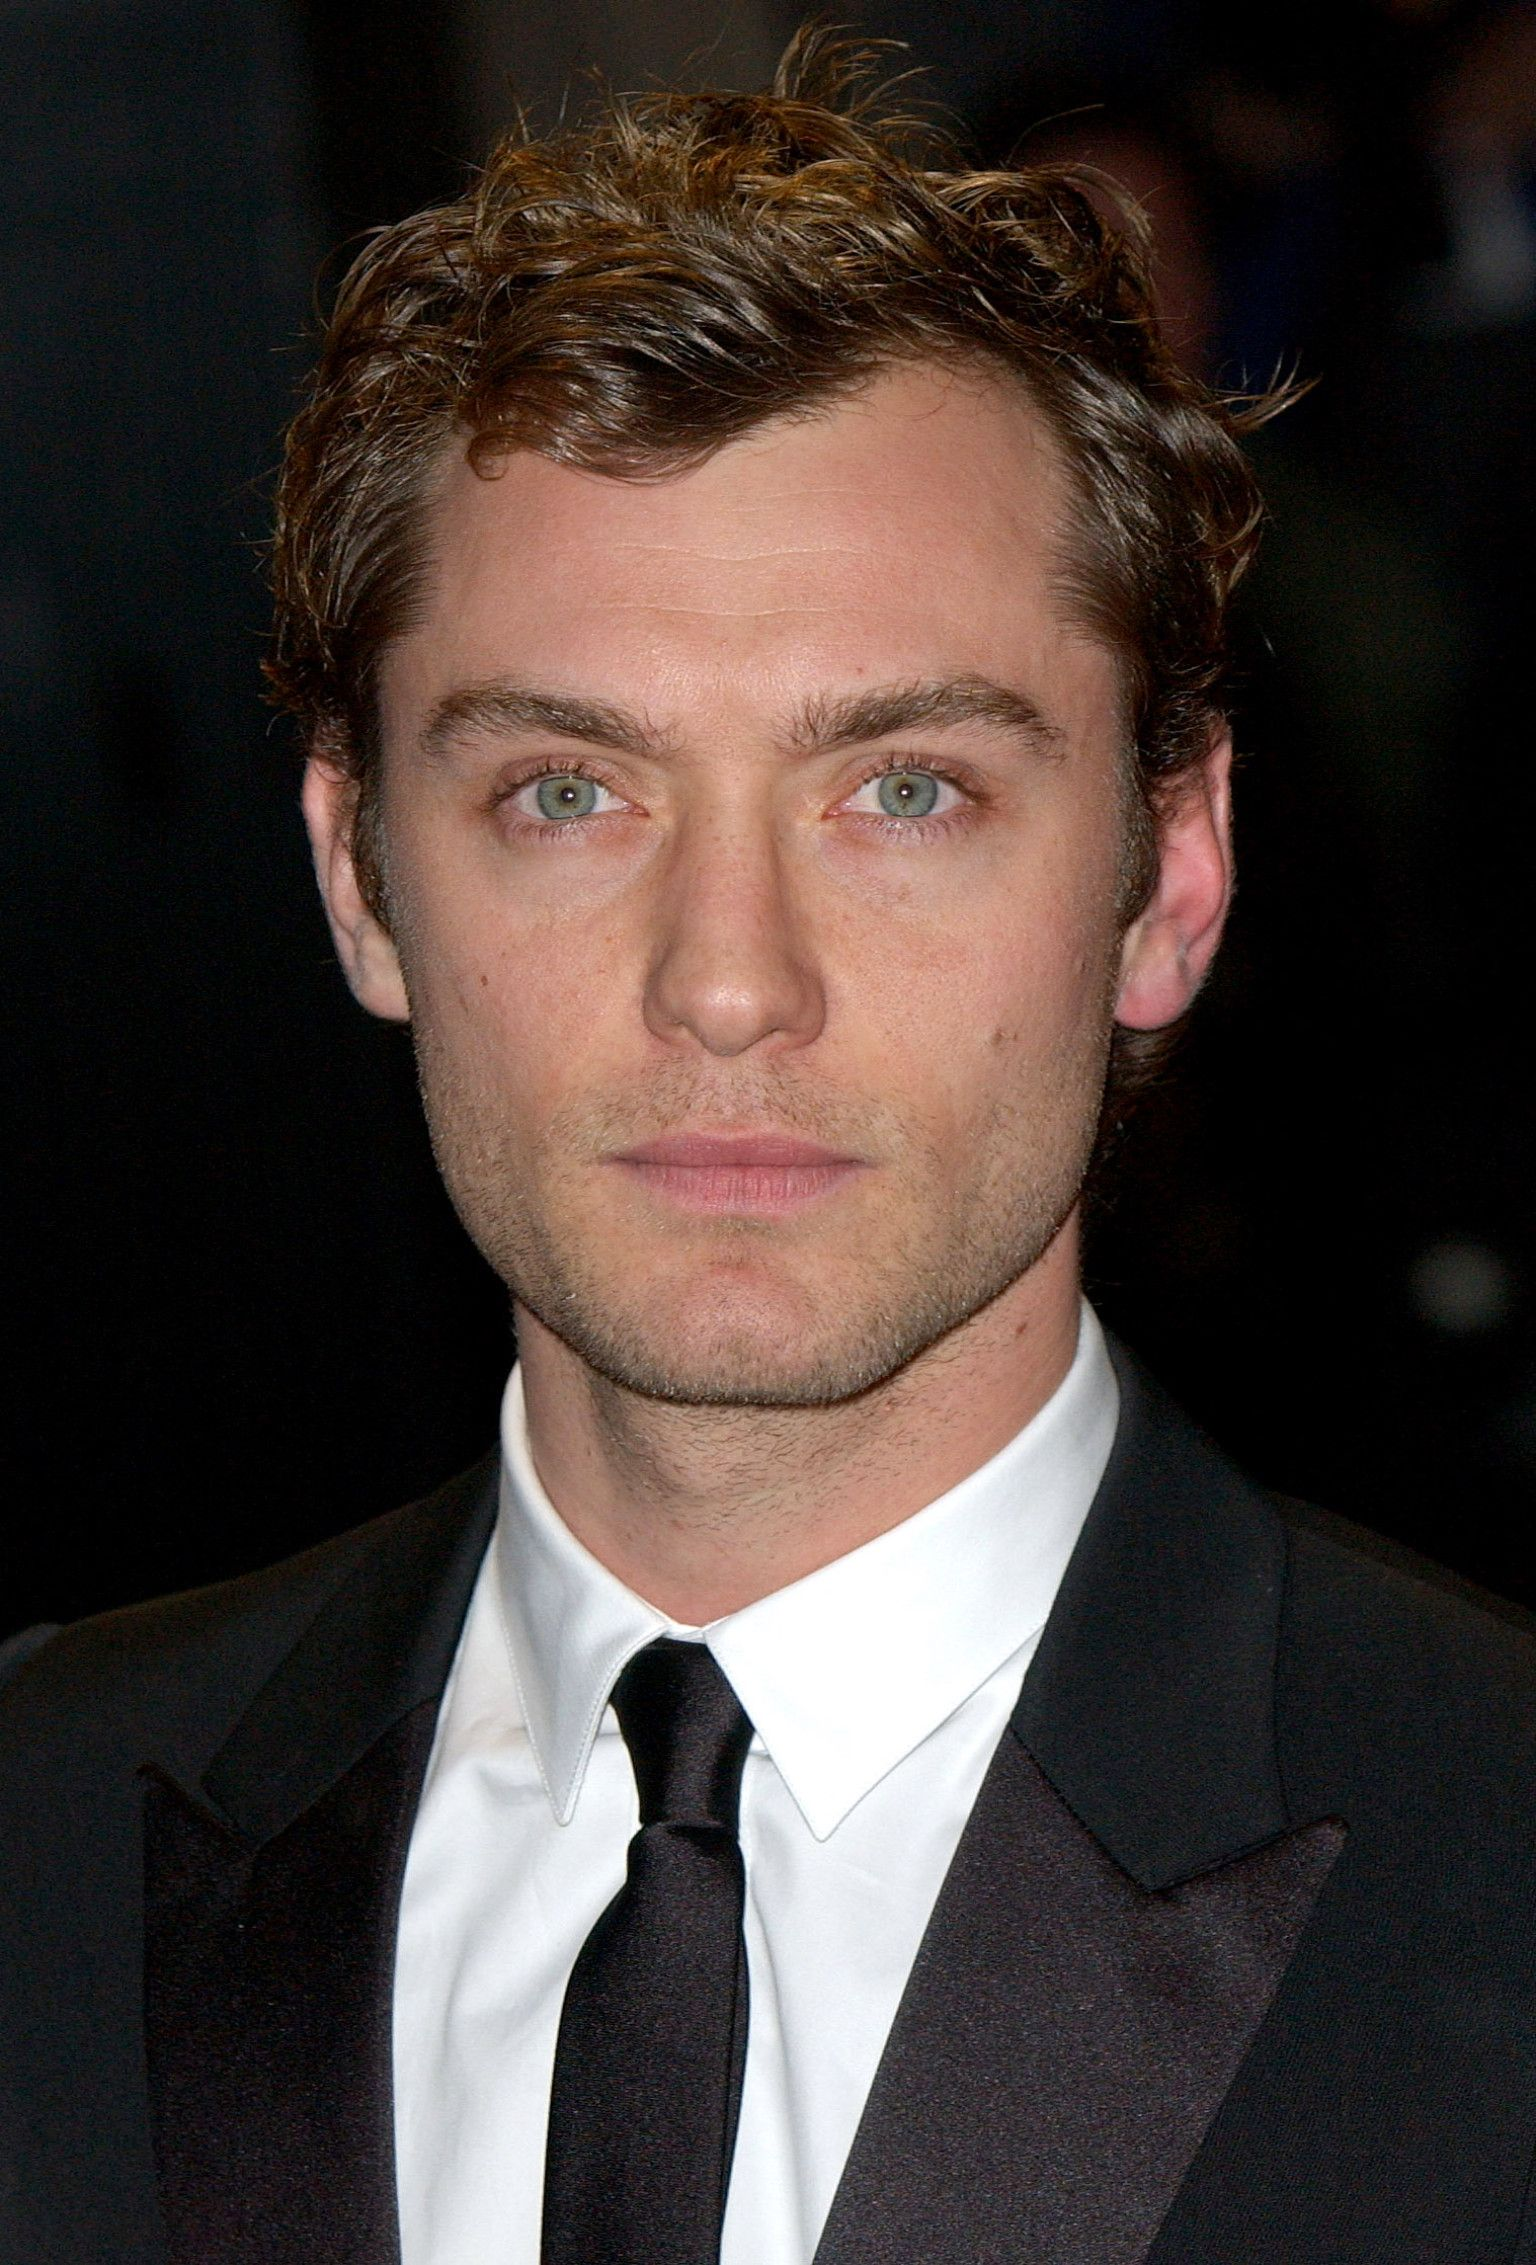 Jude Law Doesn't Look Like This Anymore | Jude law, Boy ...